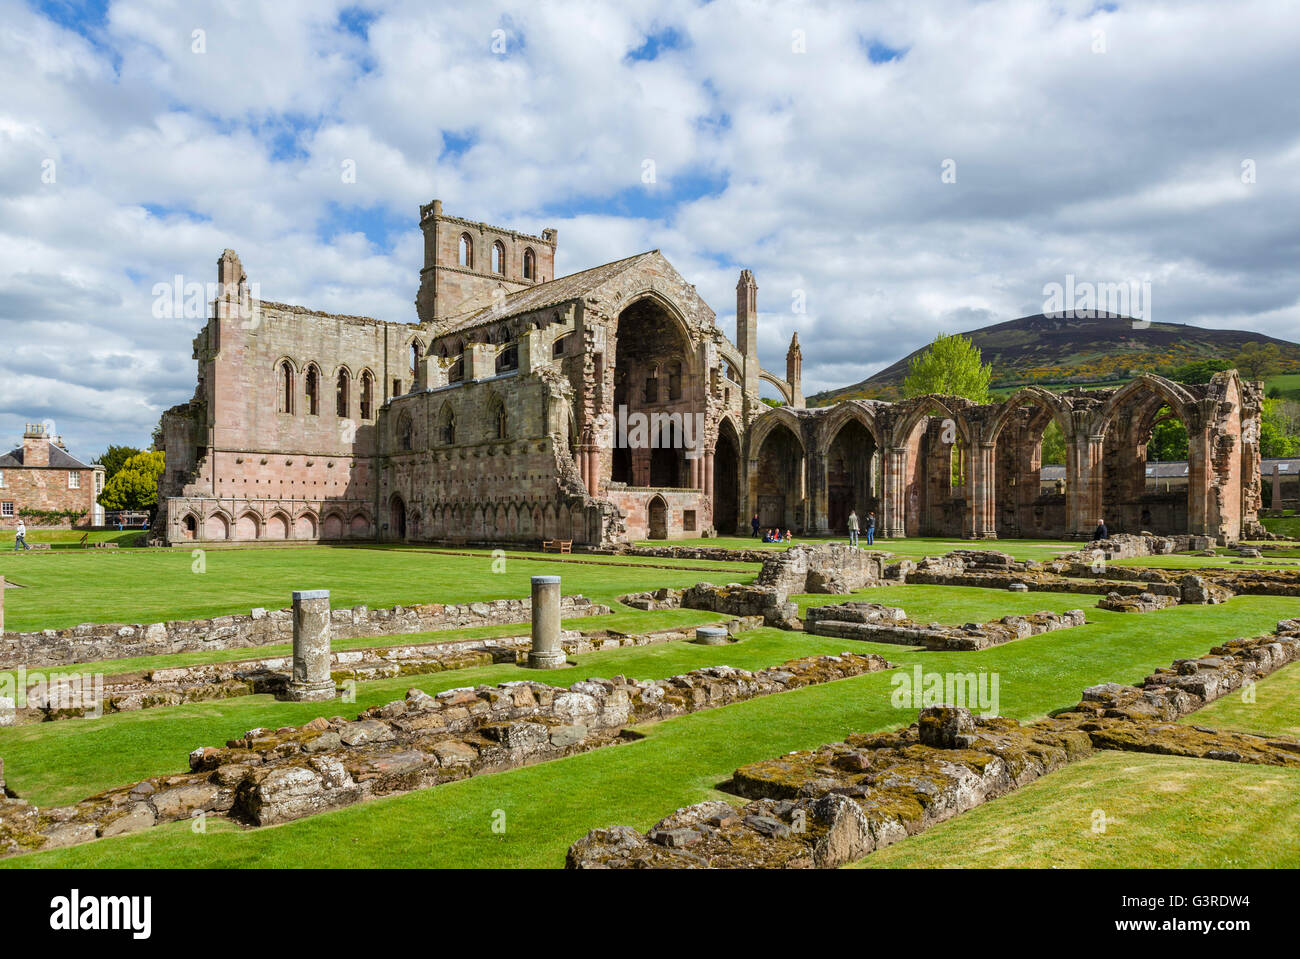 Ruins of Melrose Abbey (St Mary's Abbey), a Cistercian monastery founded in 1136 in Melrose, Scottish Borders, - Stock Image